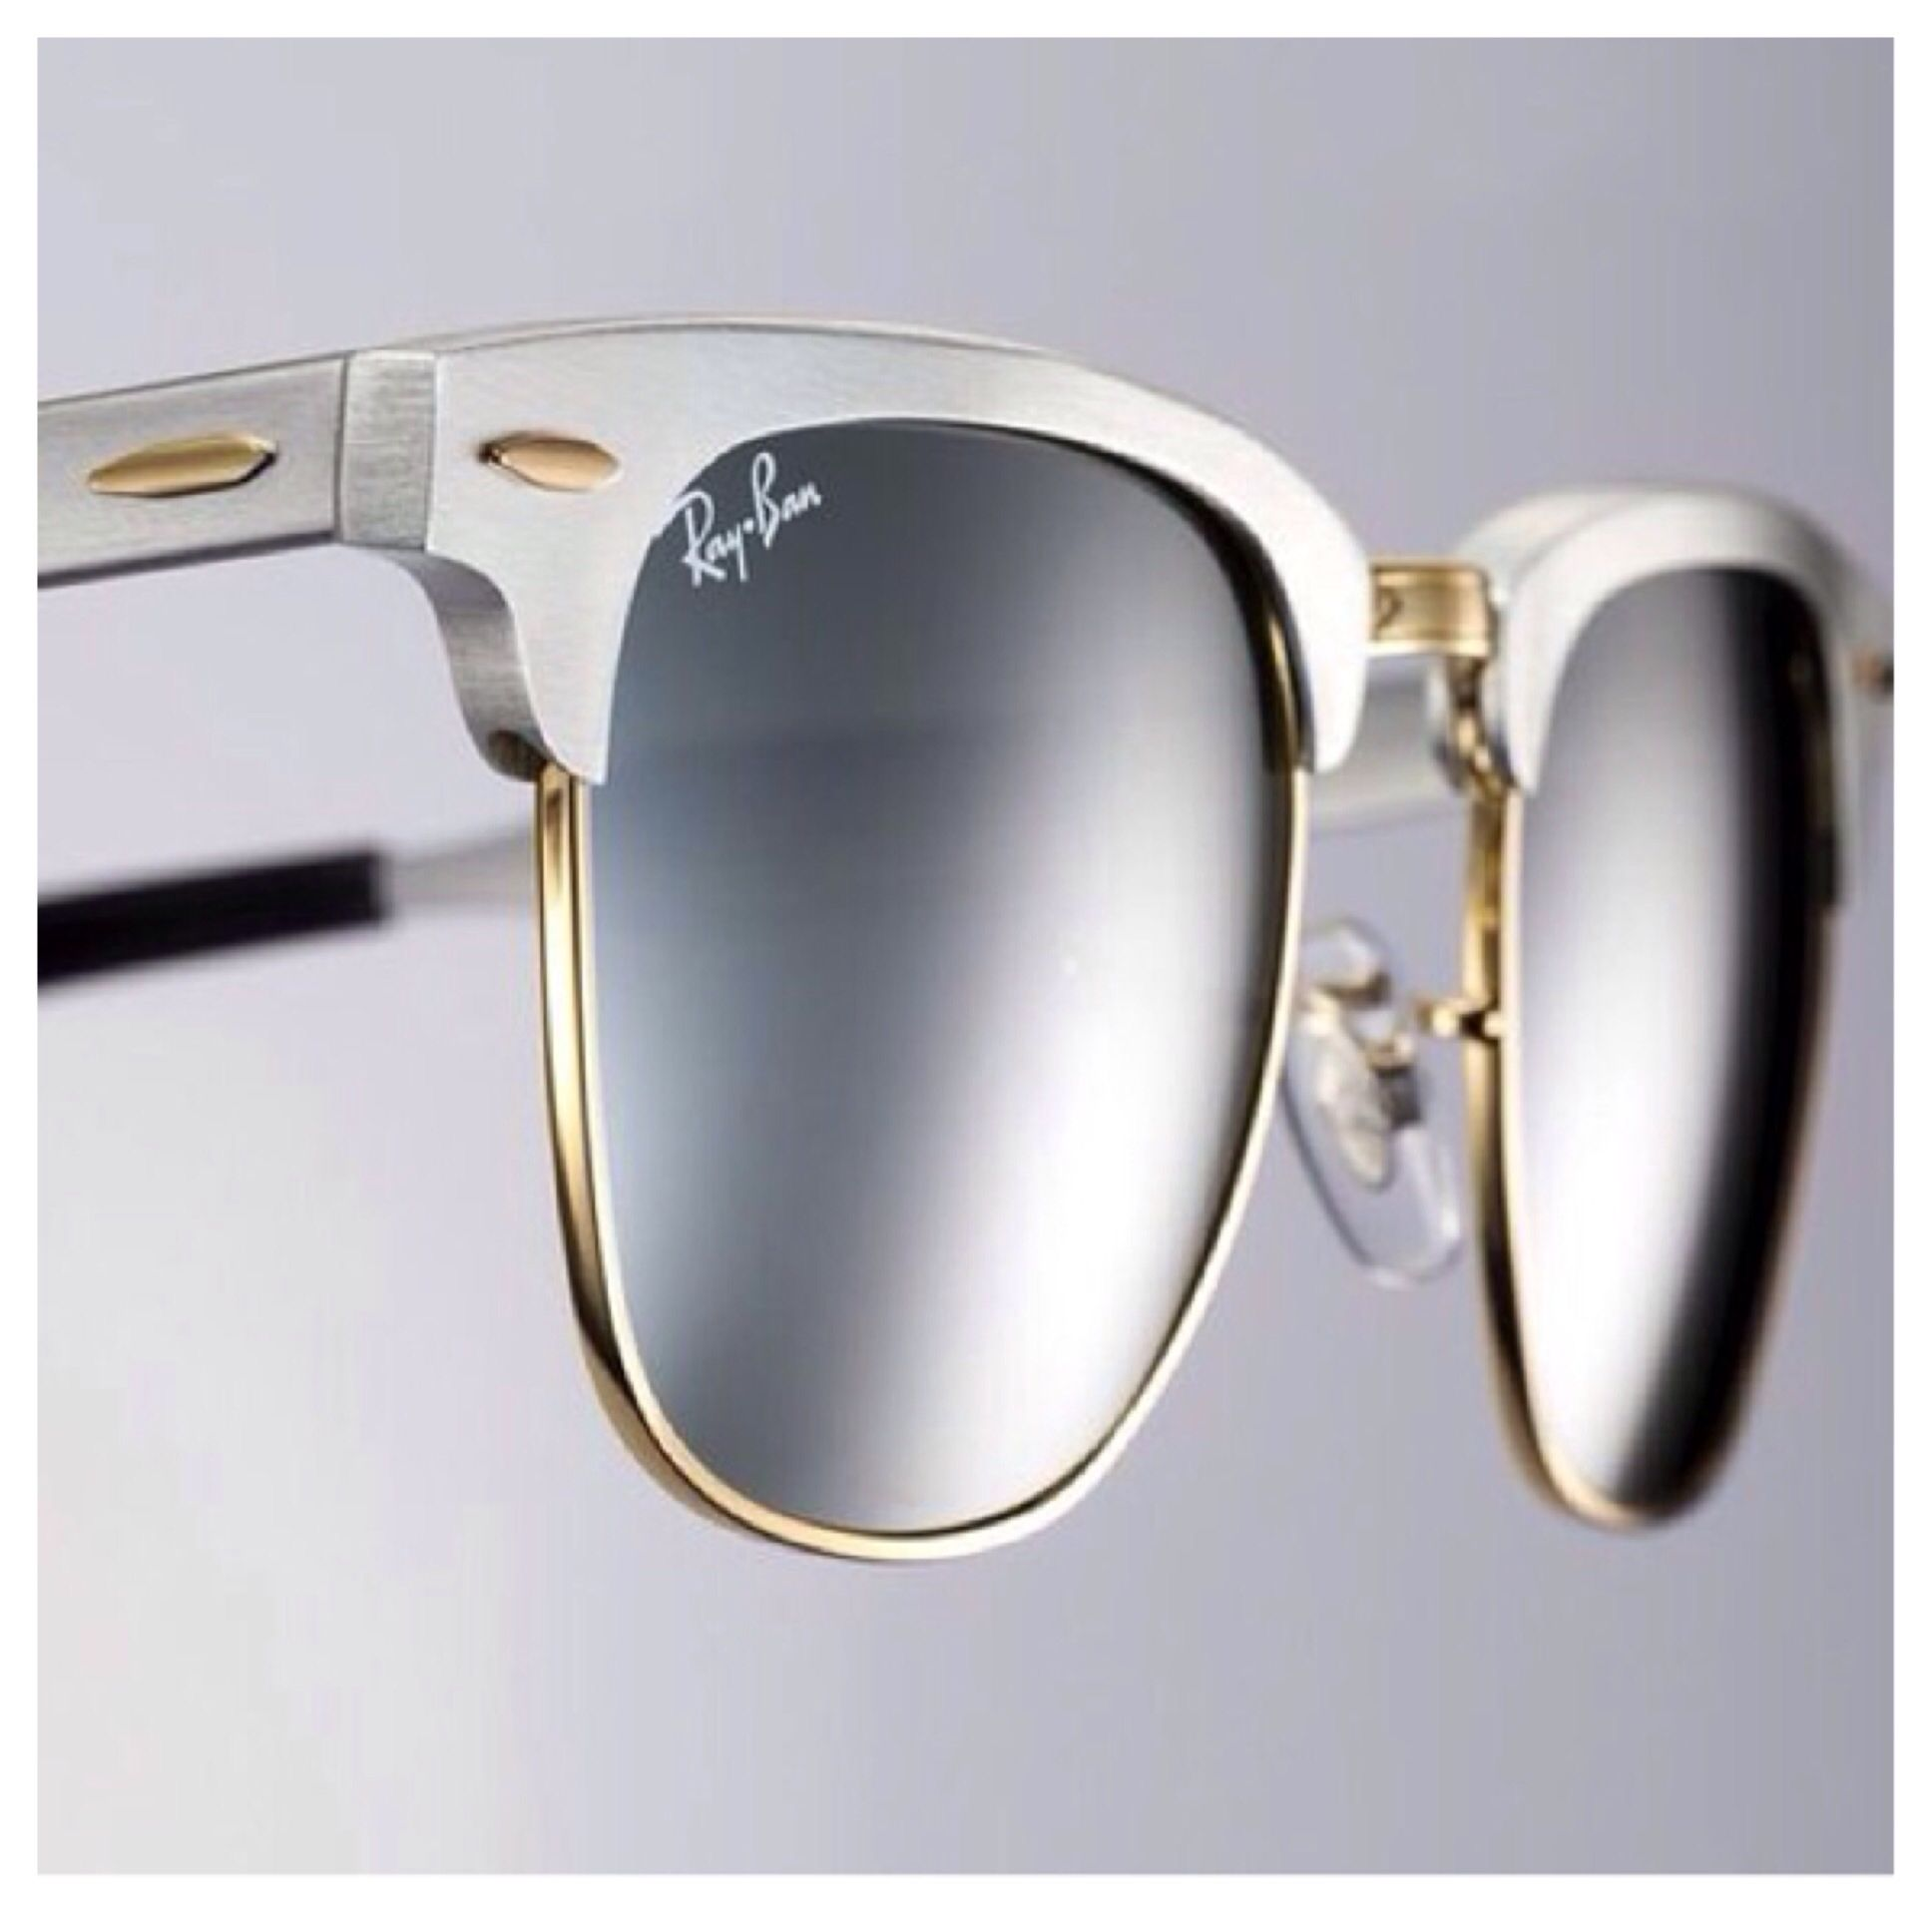 54cfff87c537 The Ray Ban Active Lifestyle Sunglasses Gunmetal Red Frames Gray lens AAJ  is best hues.